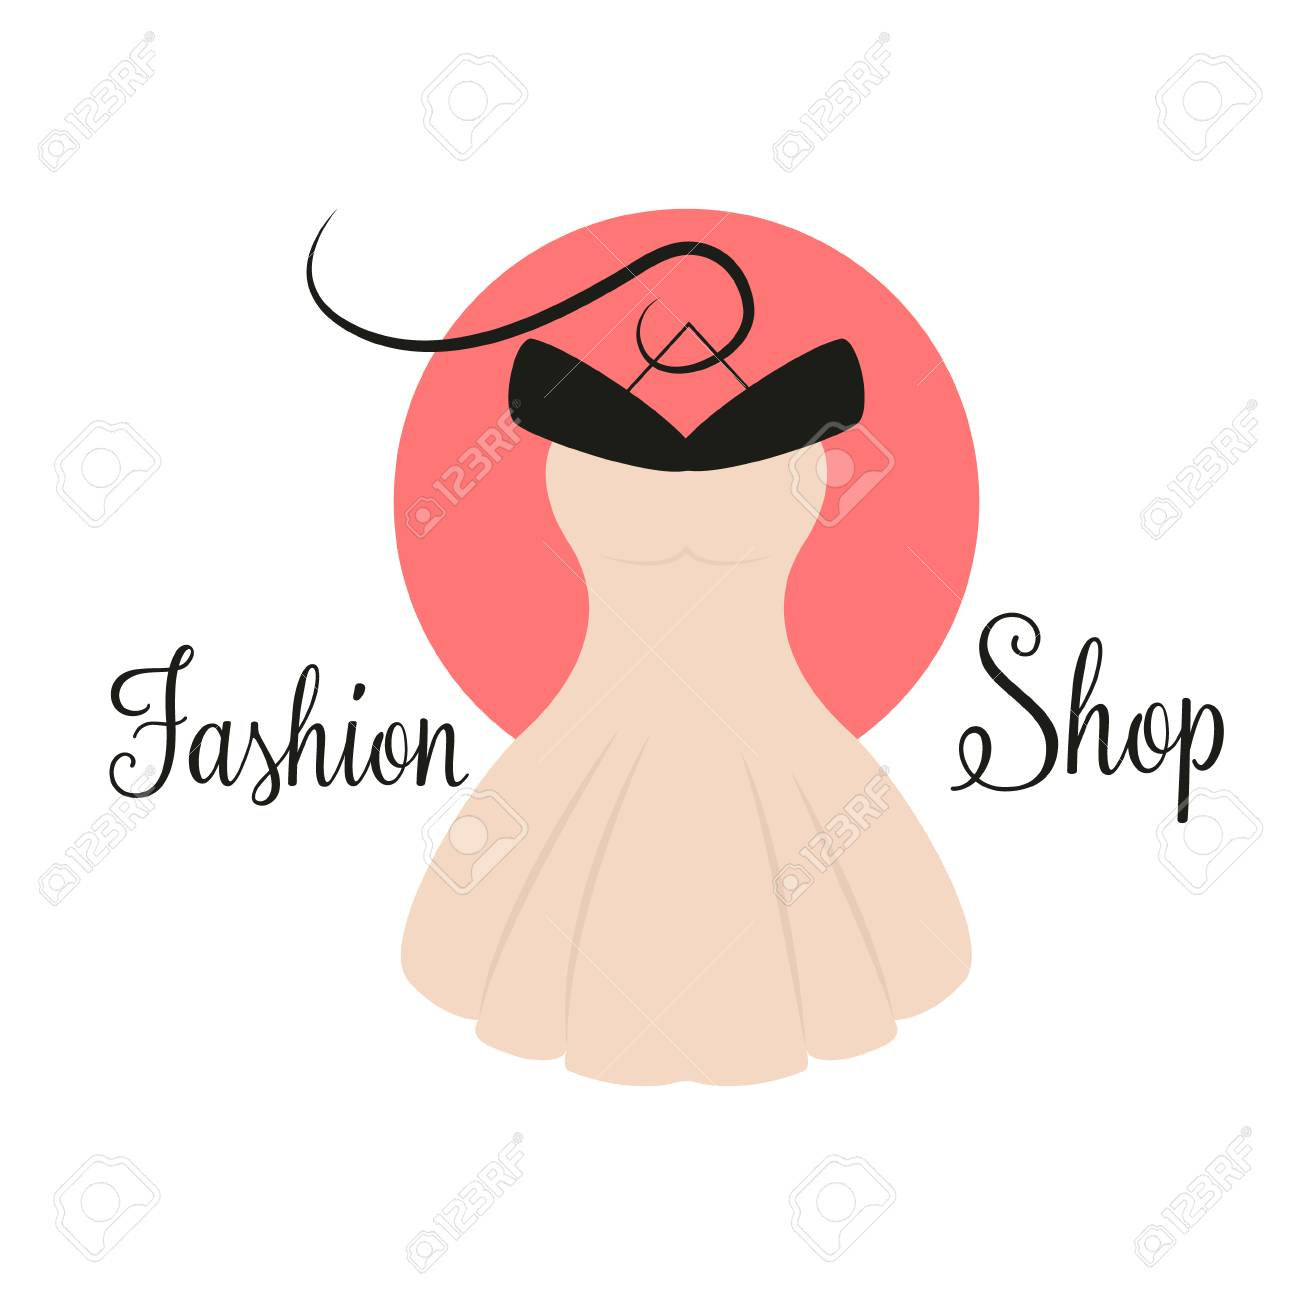 Women Fashion Logo Design Template Dress Emblem Royalty Free Cliparts Vectors And Stock Illustration Image 104998209